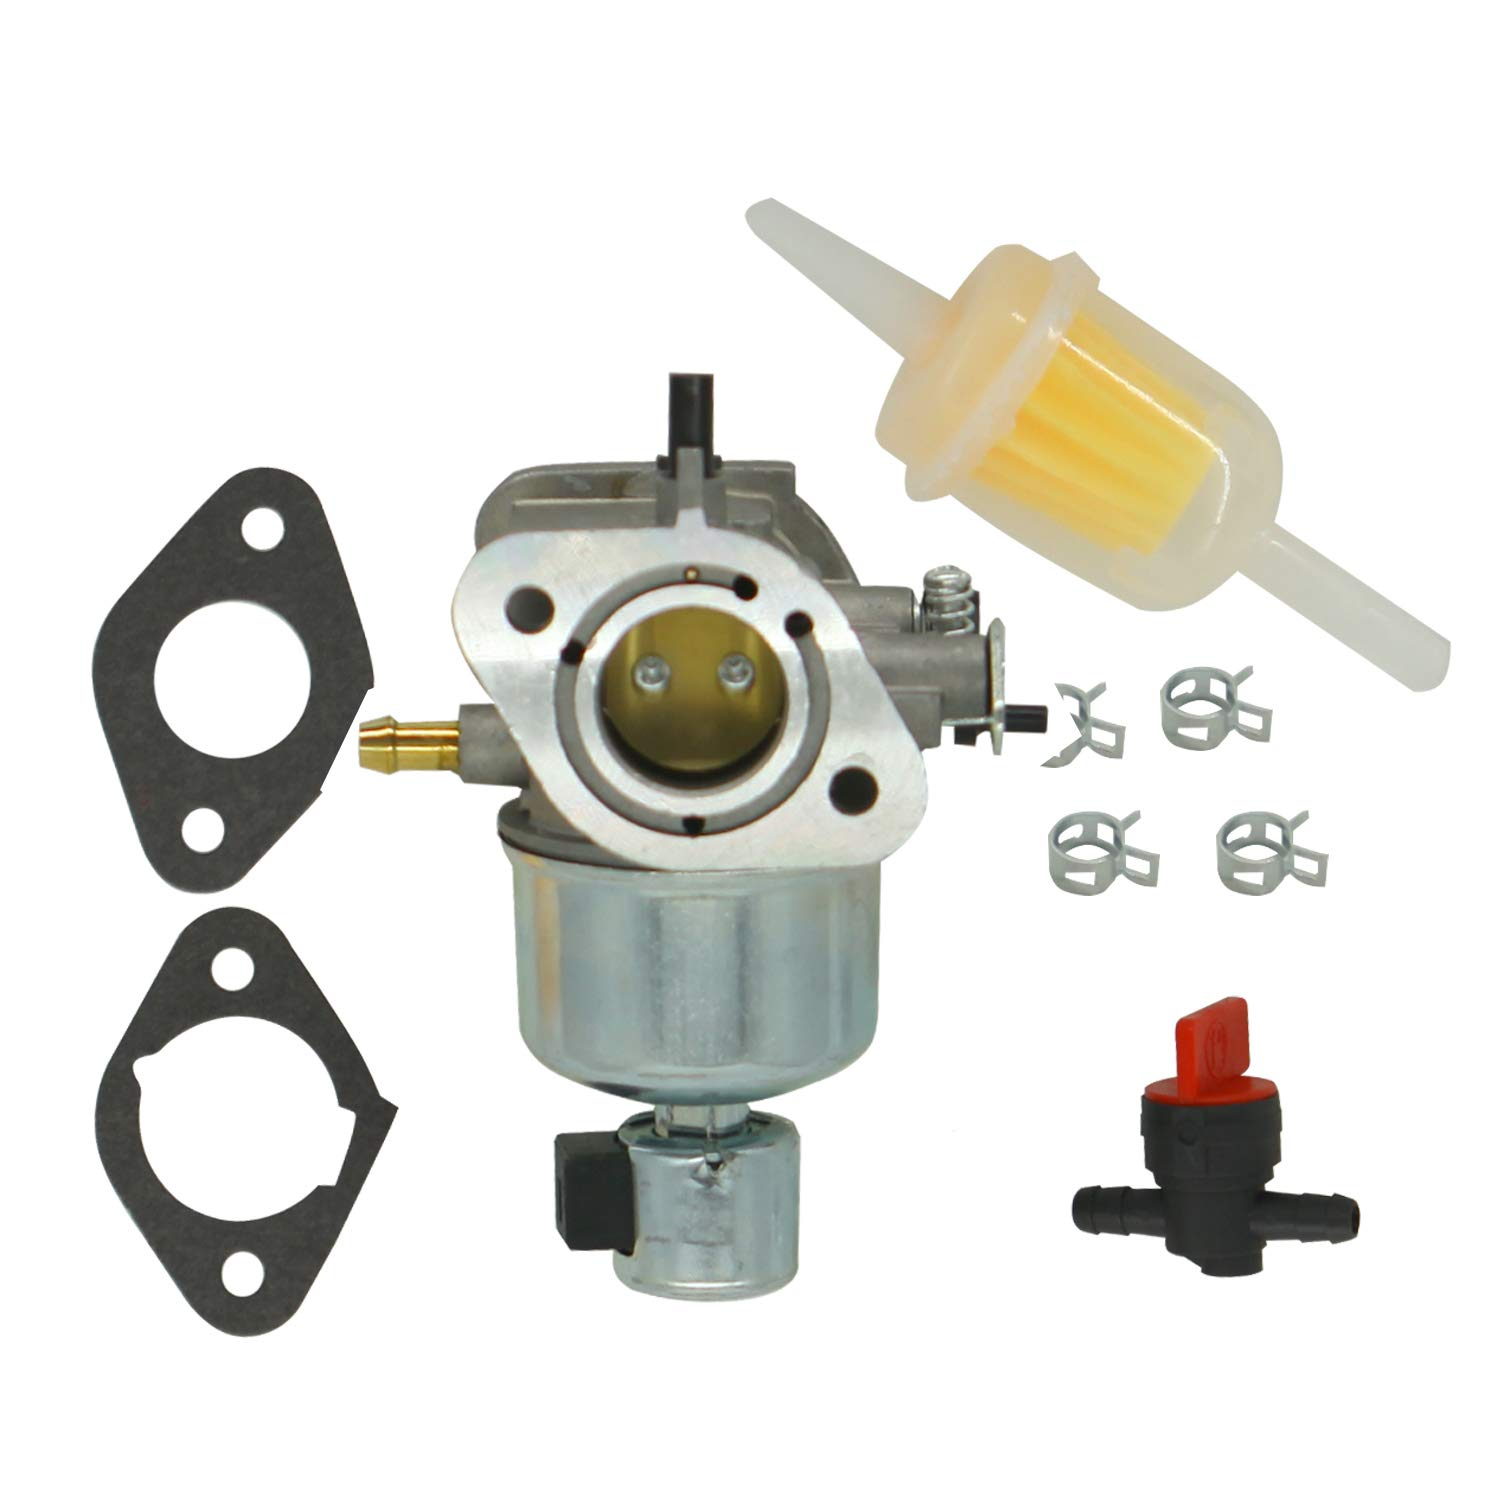 Notonparts 15003-7100 Carburetor Cleaner Time sale Tool 15003-7081 Kit FH5 Mail order cheap